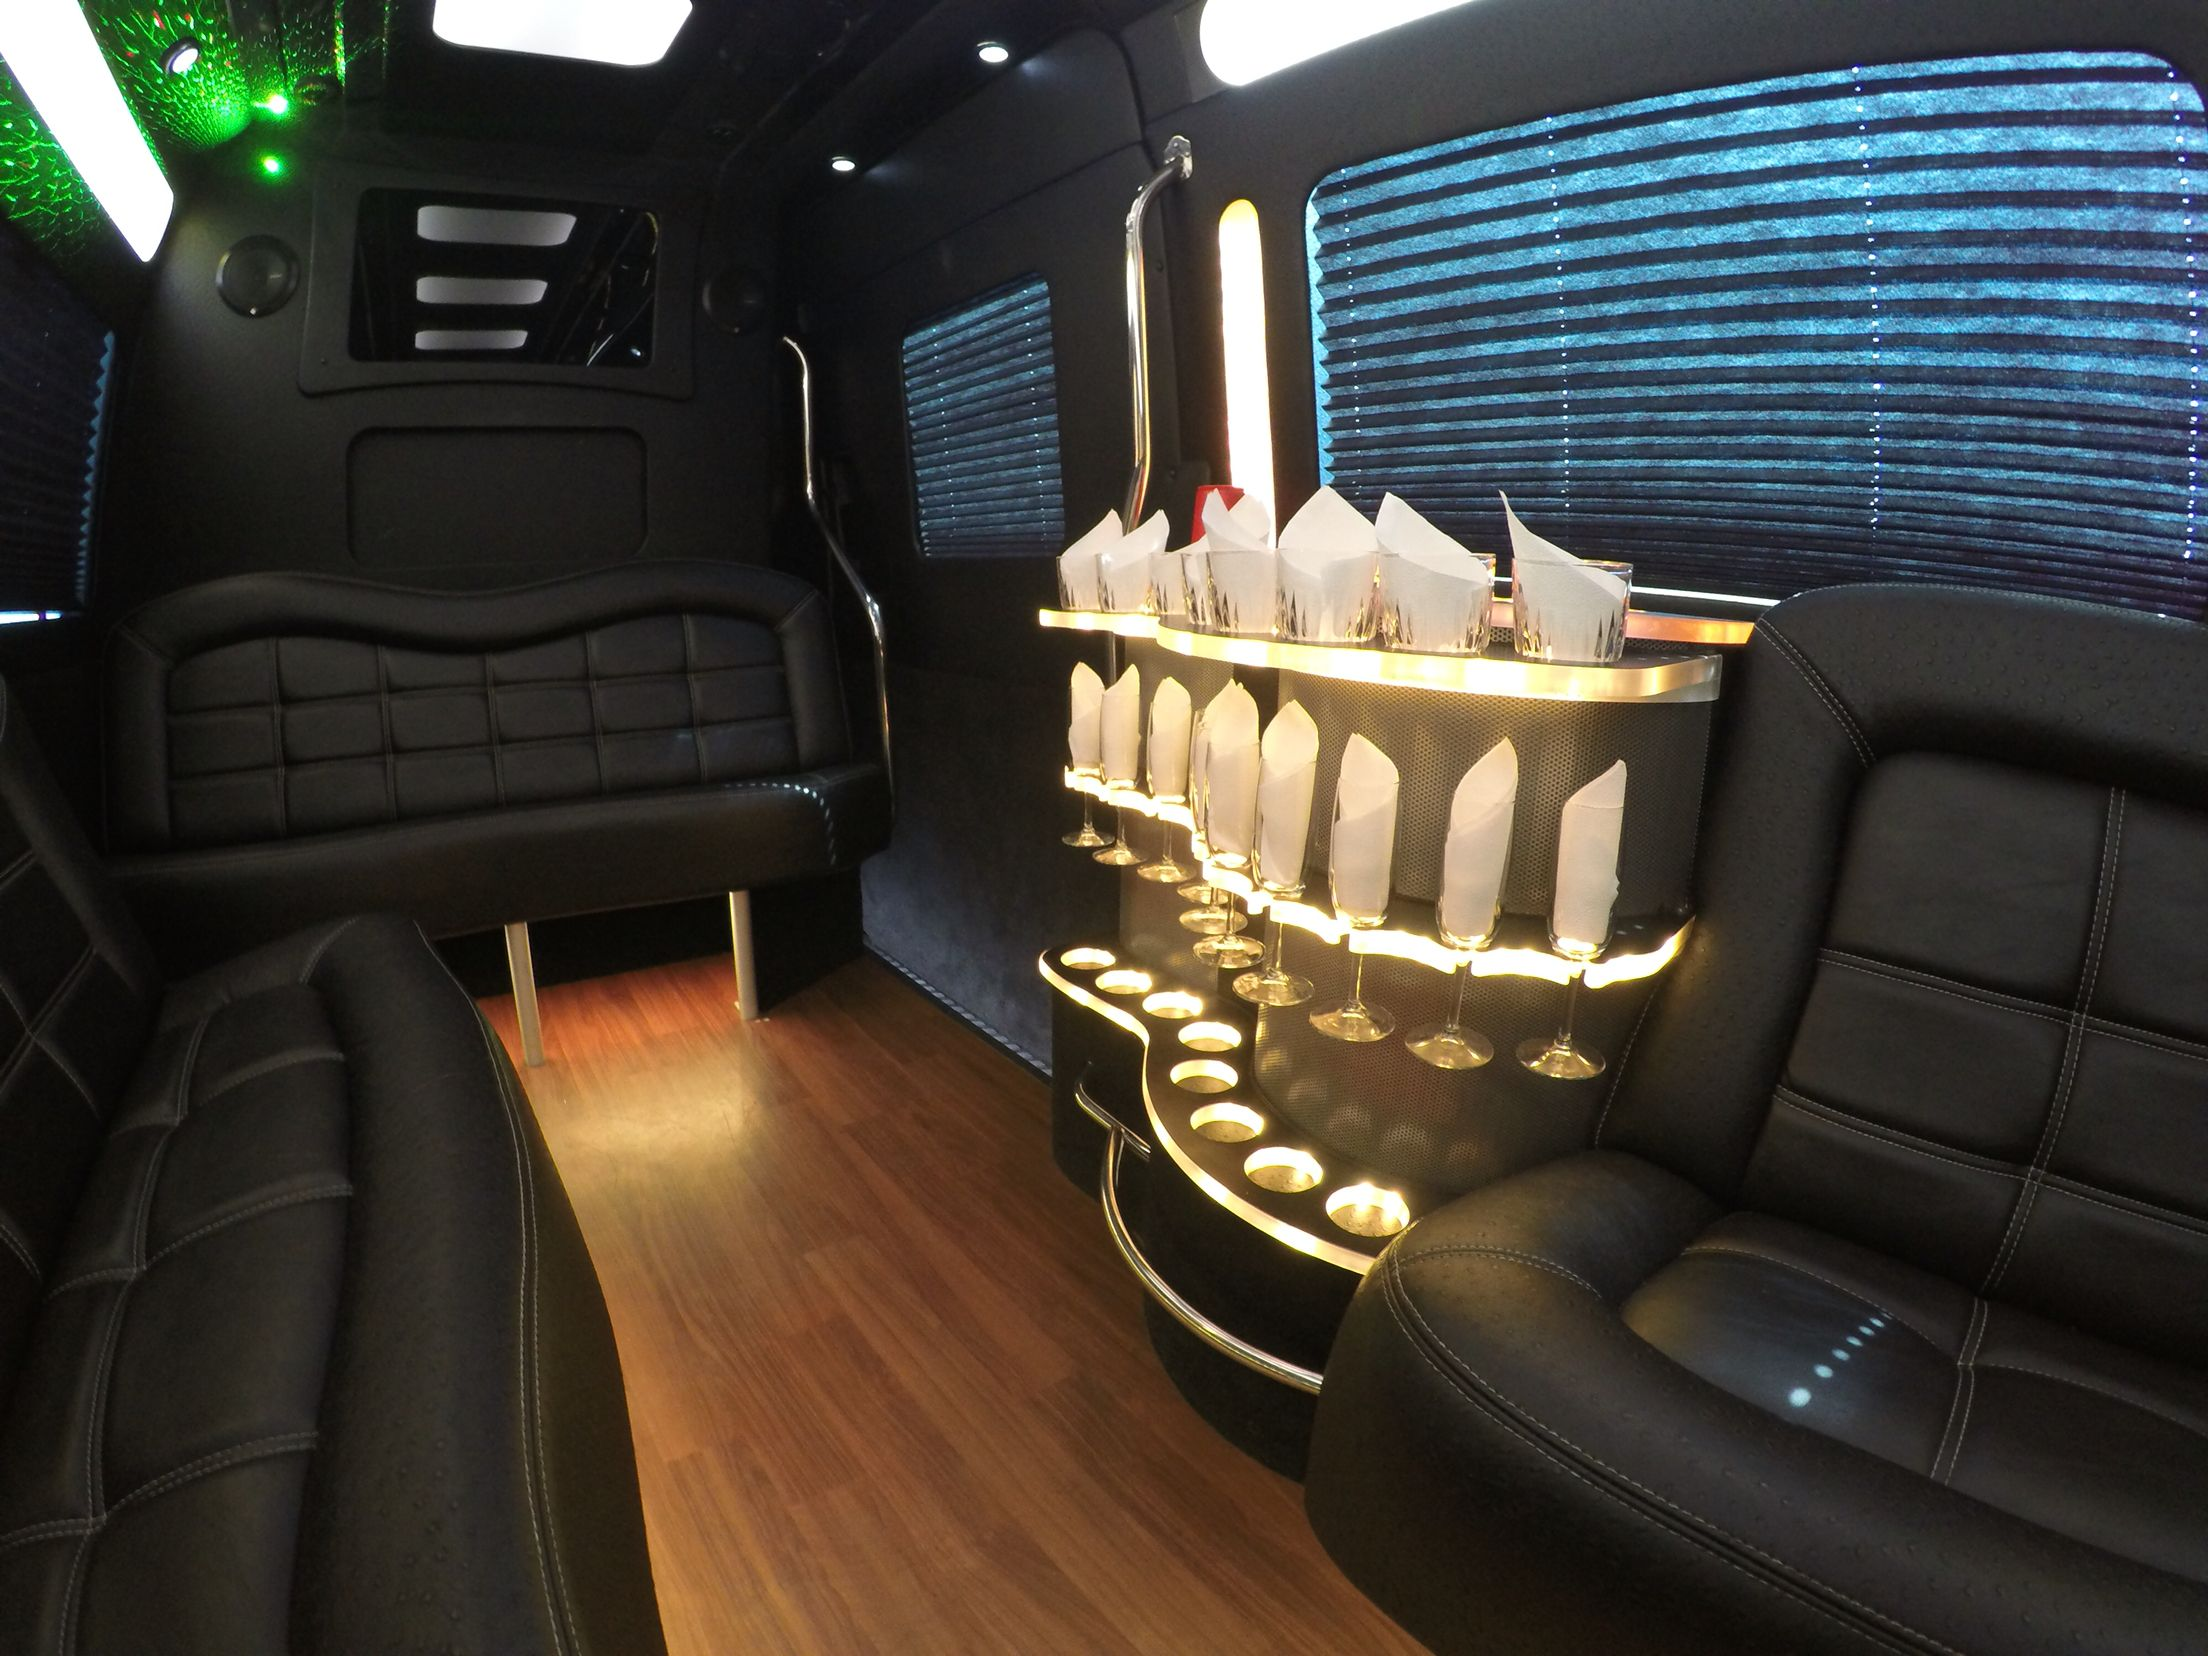 Limo Service In Long Beach Party Bus Limousine Rental With Images